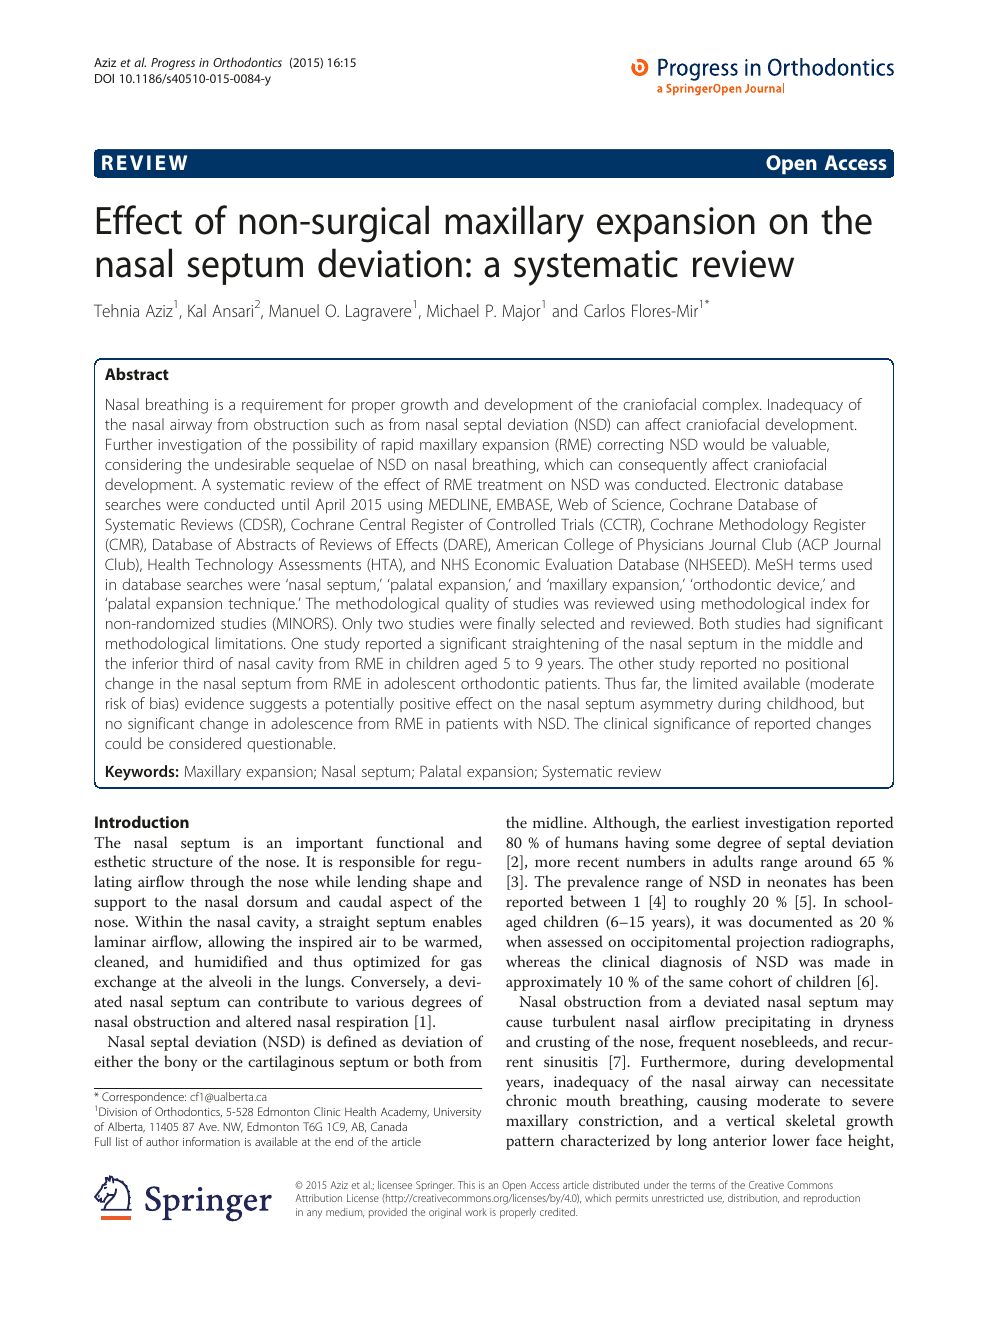 Effect of non-surgical maxillary expansion on the nasal